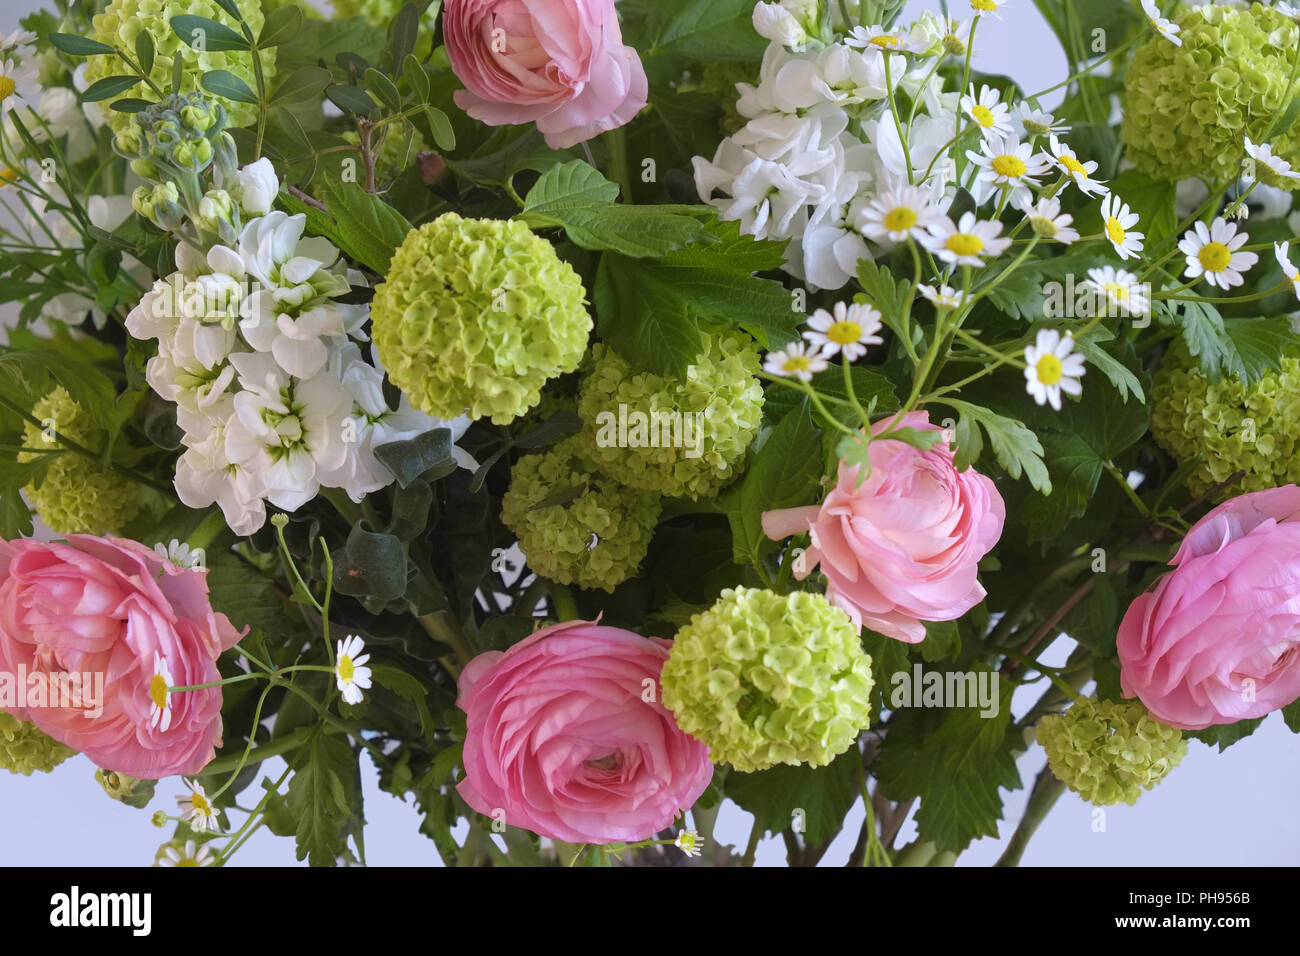 Spring Bouquet - Stock Image